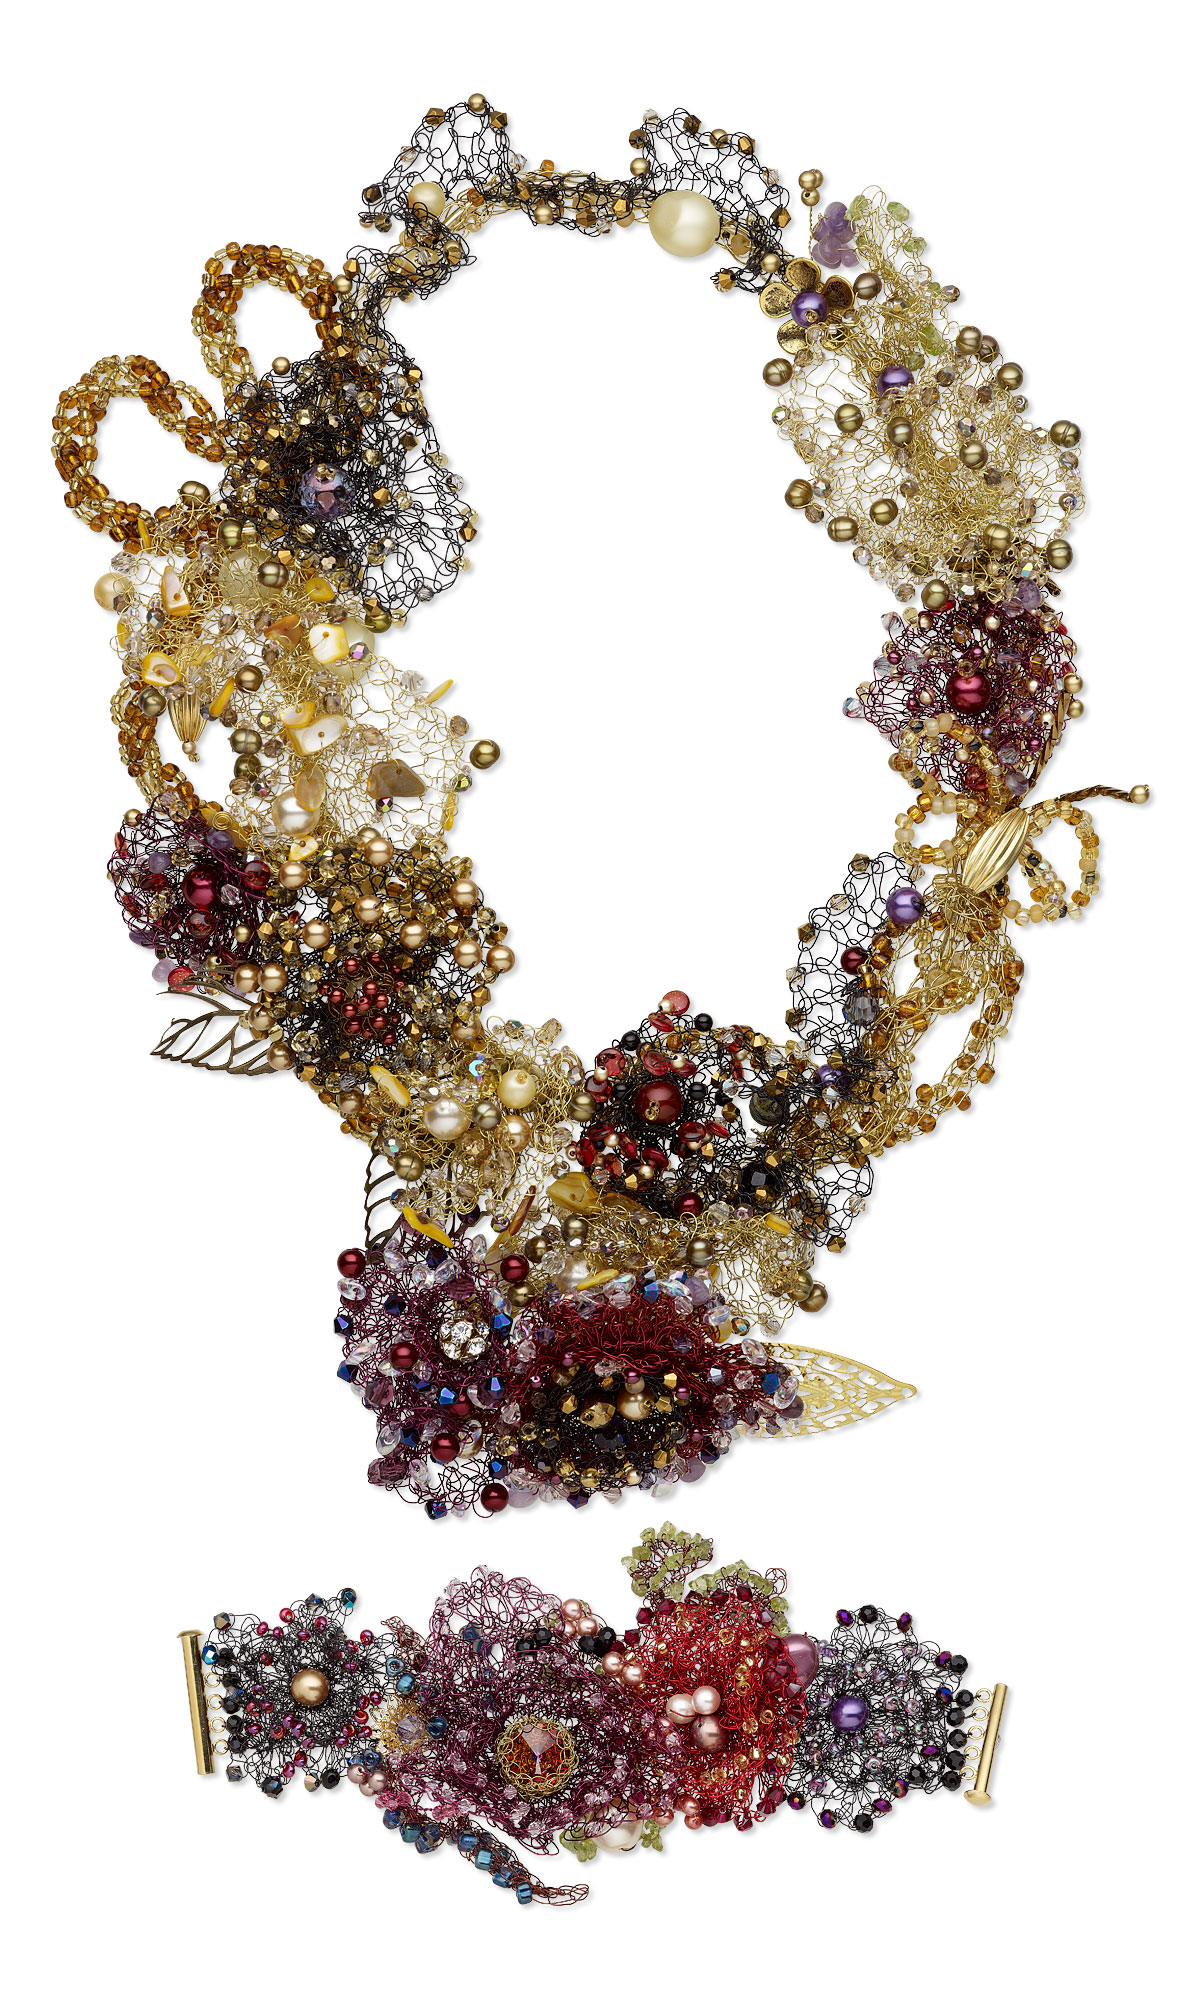 Jewelry Design - Bib-Style Necklace and Bracelet Set with Cultured ...